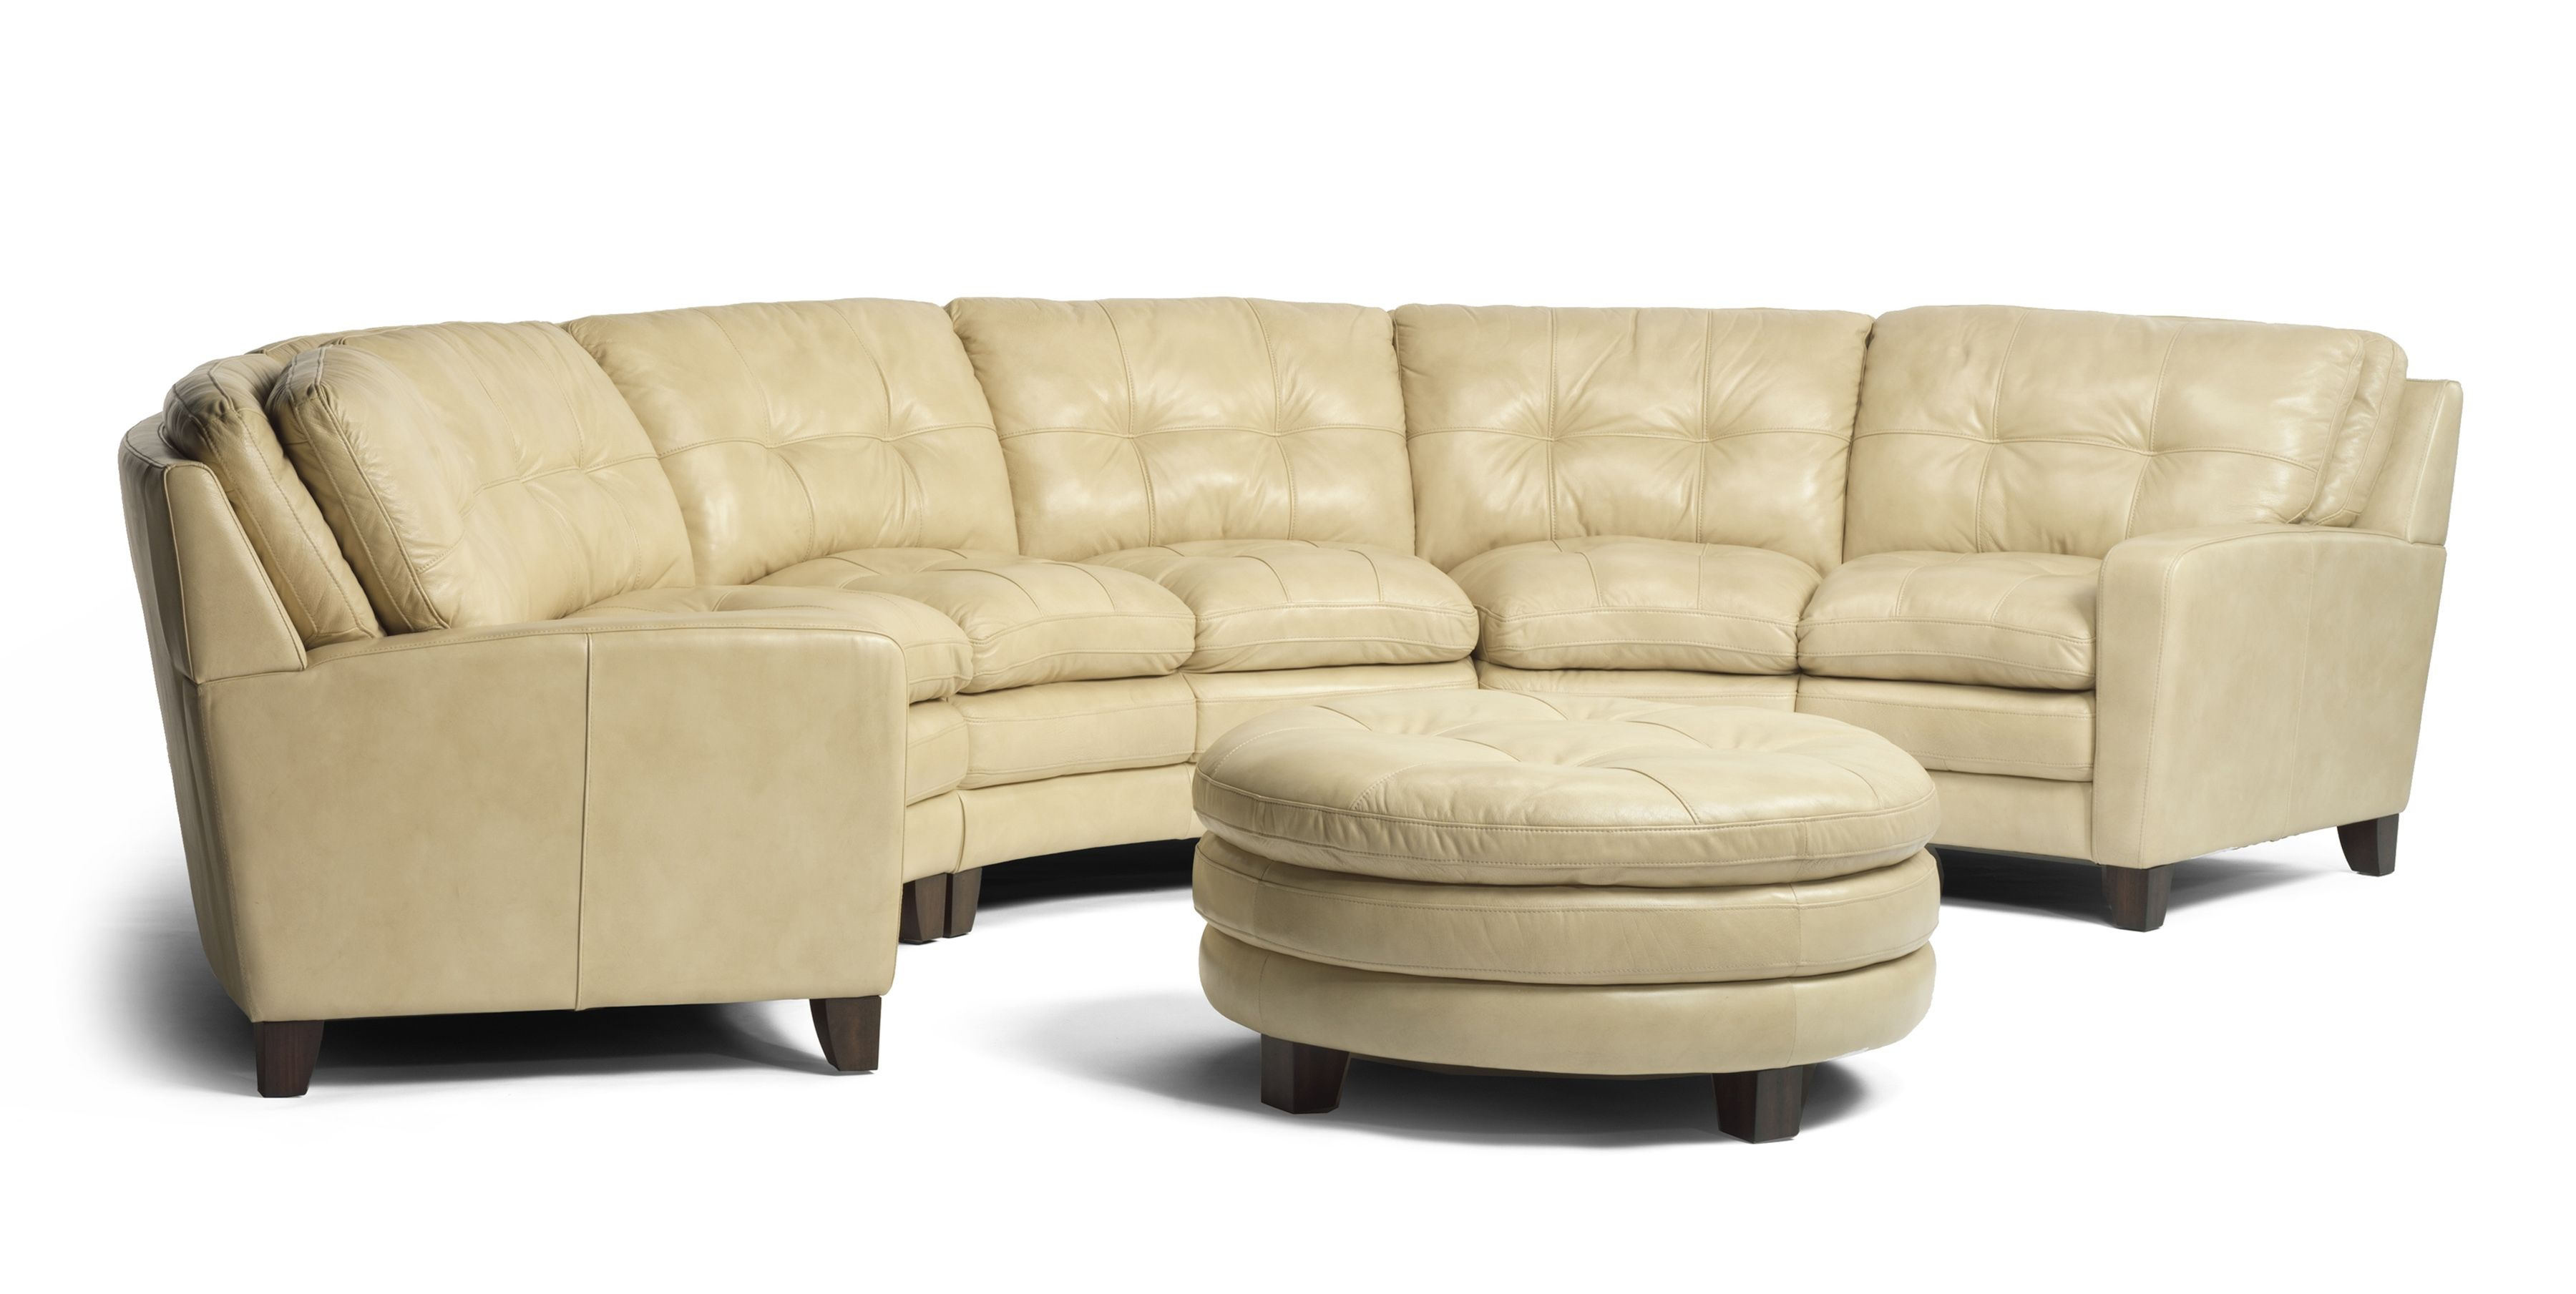 Gorgeous cream leather conversation sofa